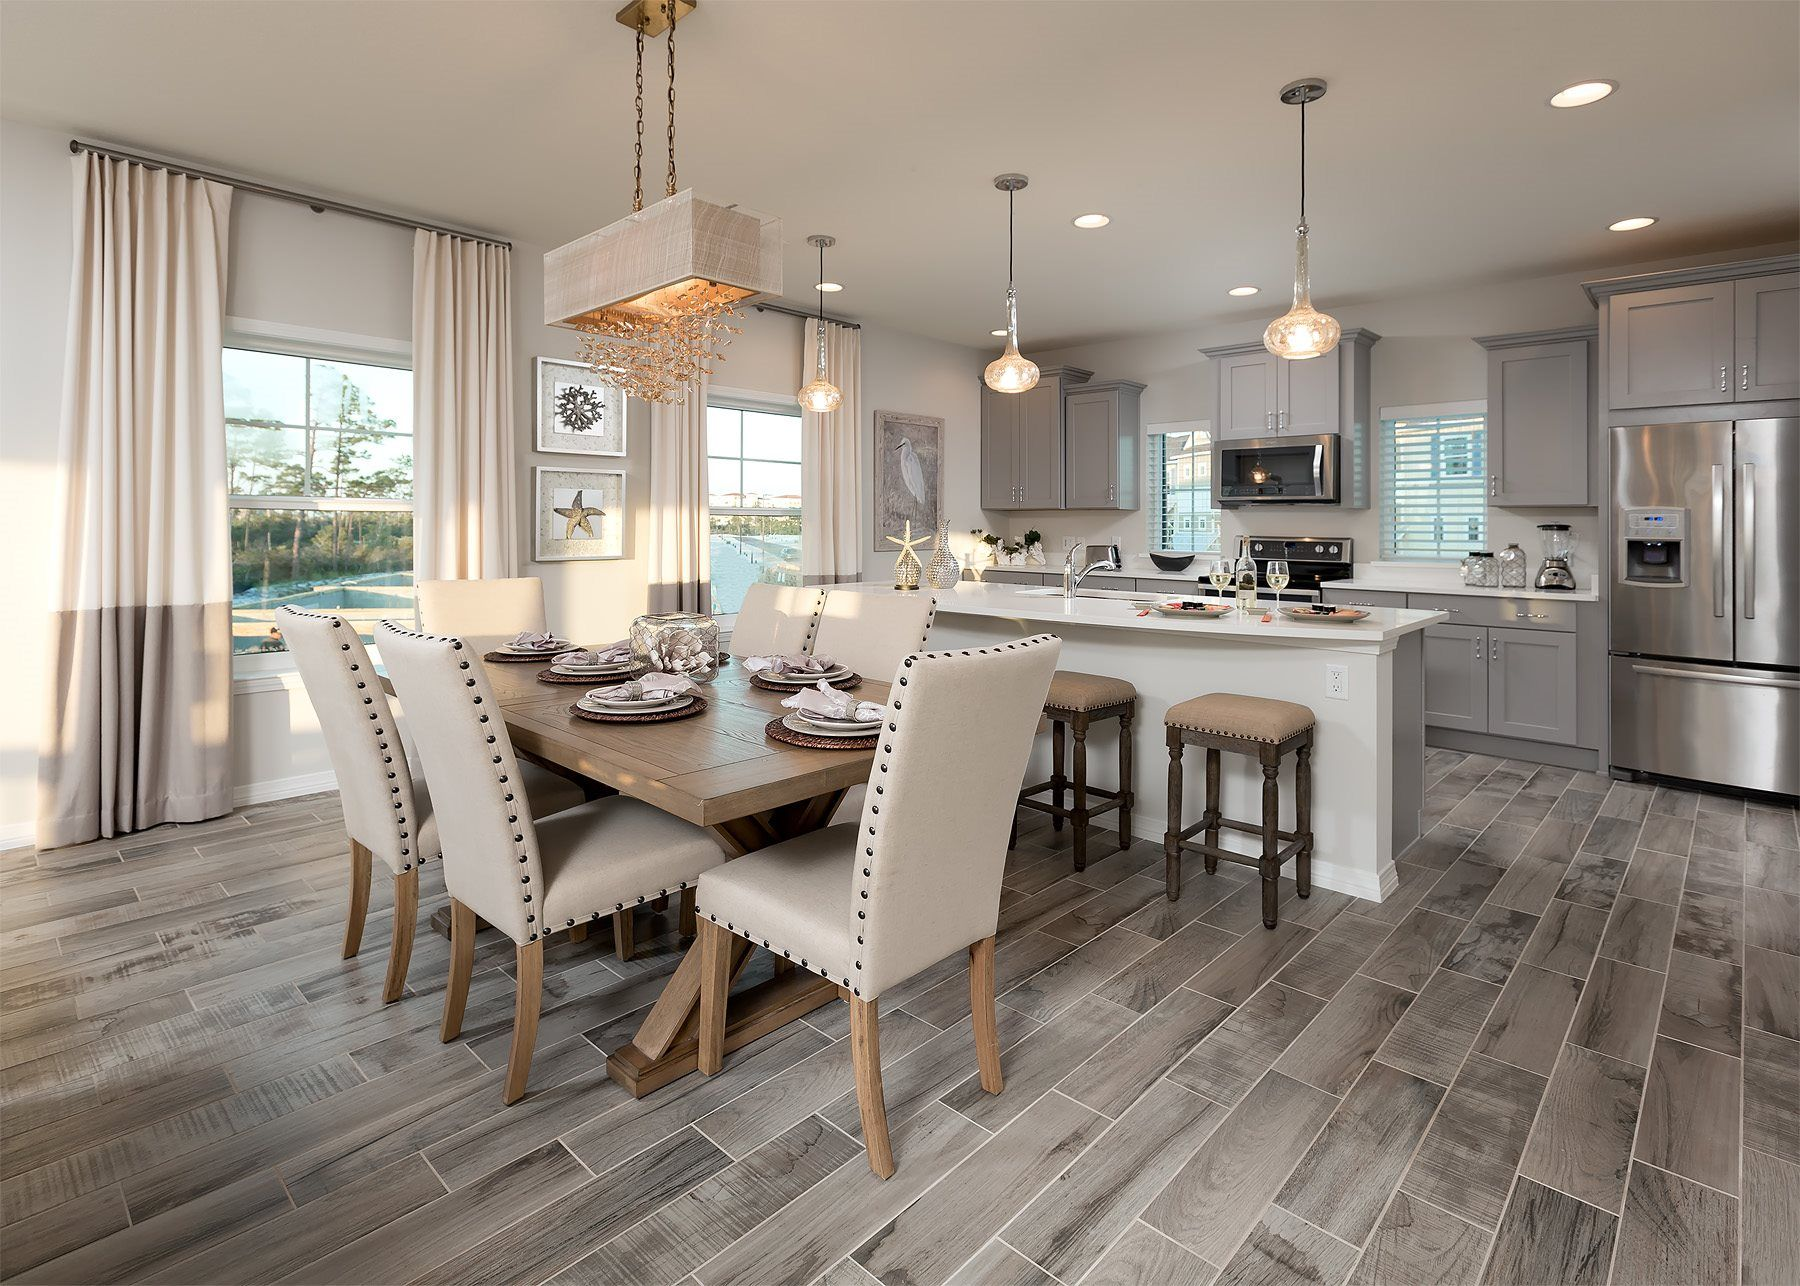 Kitchen featured in the 3BR Townhome By Lennar in Pensacola, FL